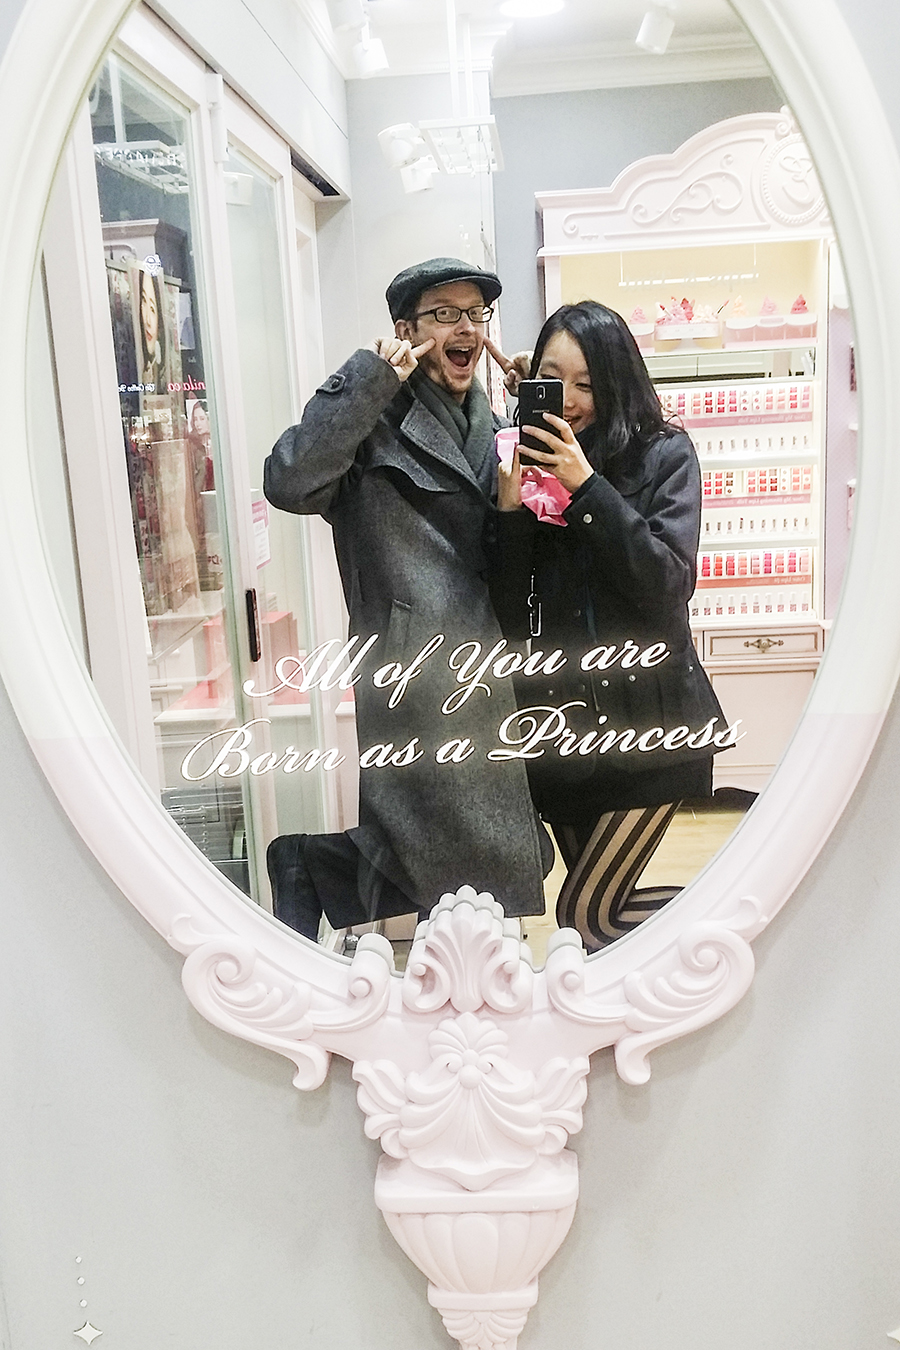 Ottie and Ren posing in front of a mirror at Etude House with the inscription: All of you are Born as a Princess, in Myeongdong, Seoul, South Korea.